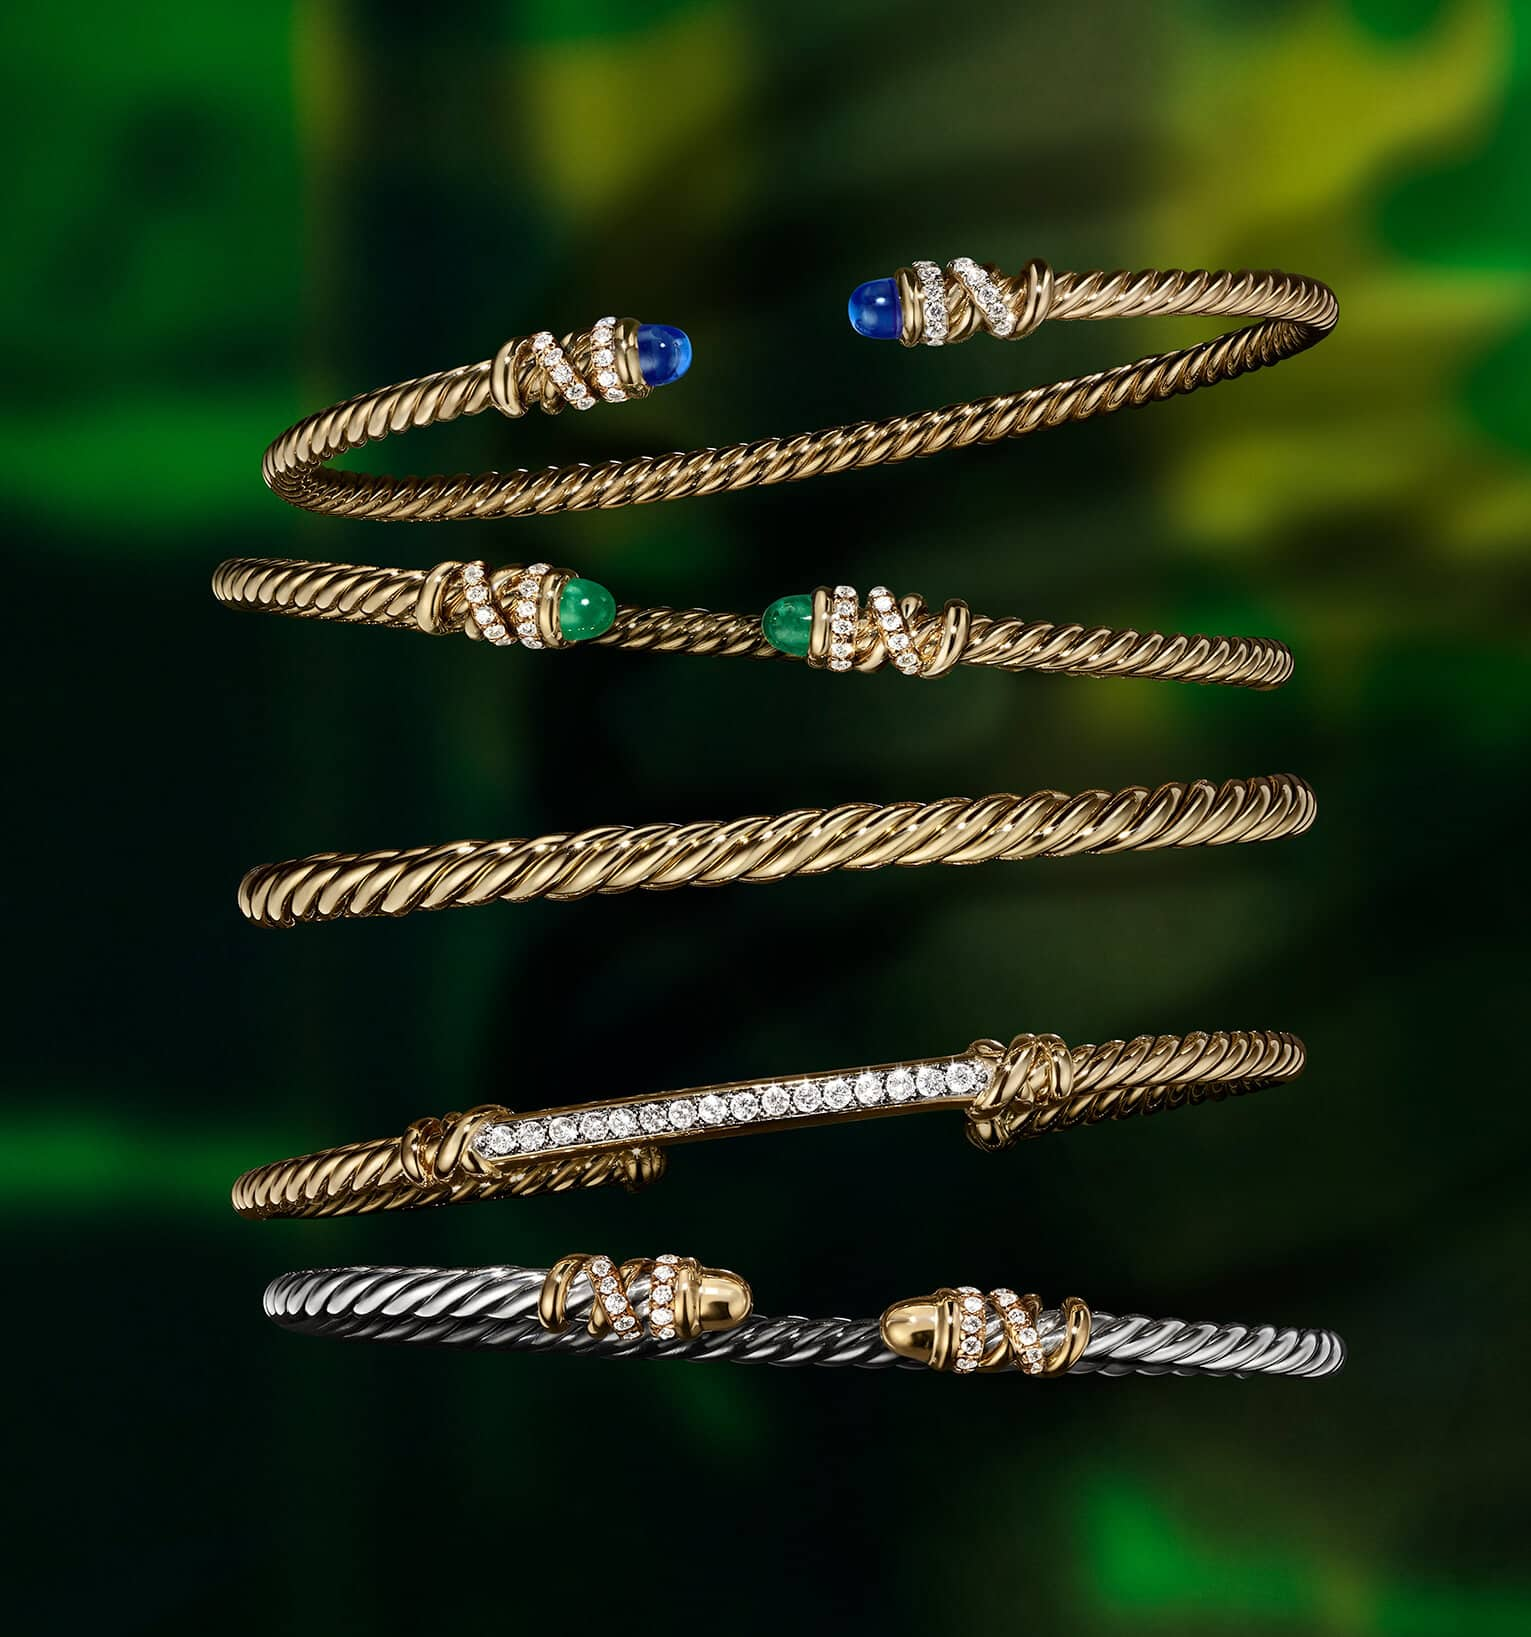 A color photo shows a vertical stack of five David Yurman bracelets for women from the Pavéflex, Modern Renaissance and Petite Pavé collections floating in front of a colorful backdrop with illuminated sections. Four of the women's bracelets are crafted from 18K yellow gold with or without pavé white diamonds. The center bracelet is crafted from 18K white gold with pavé black diamonds.